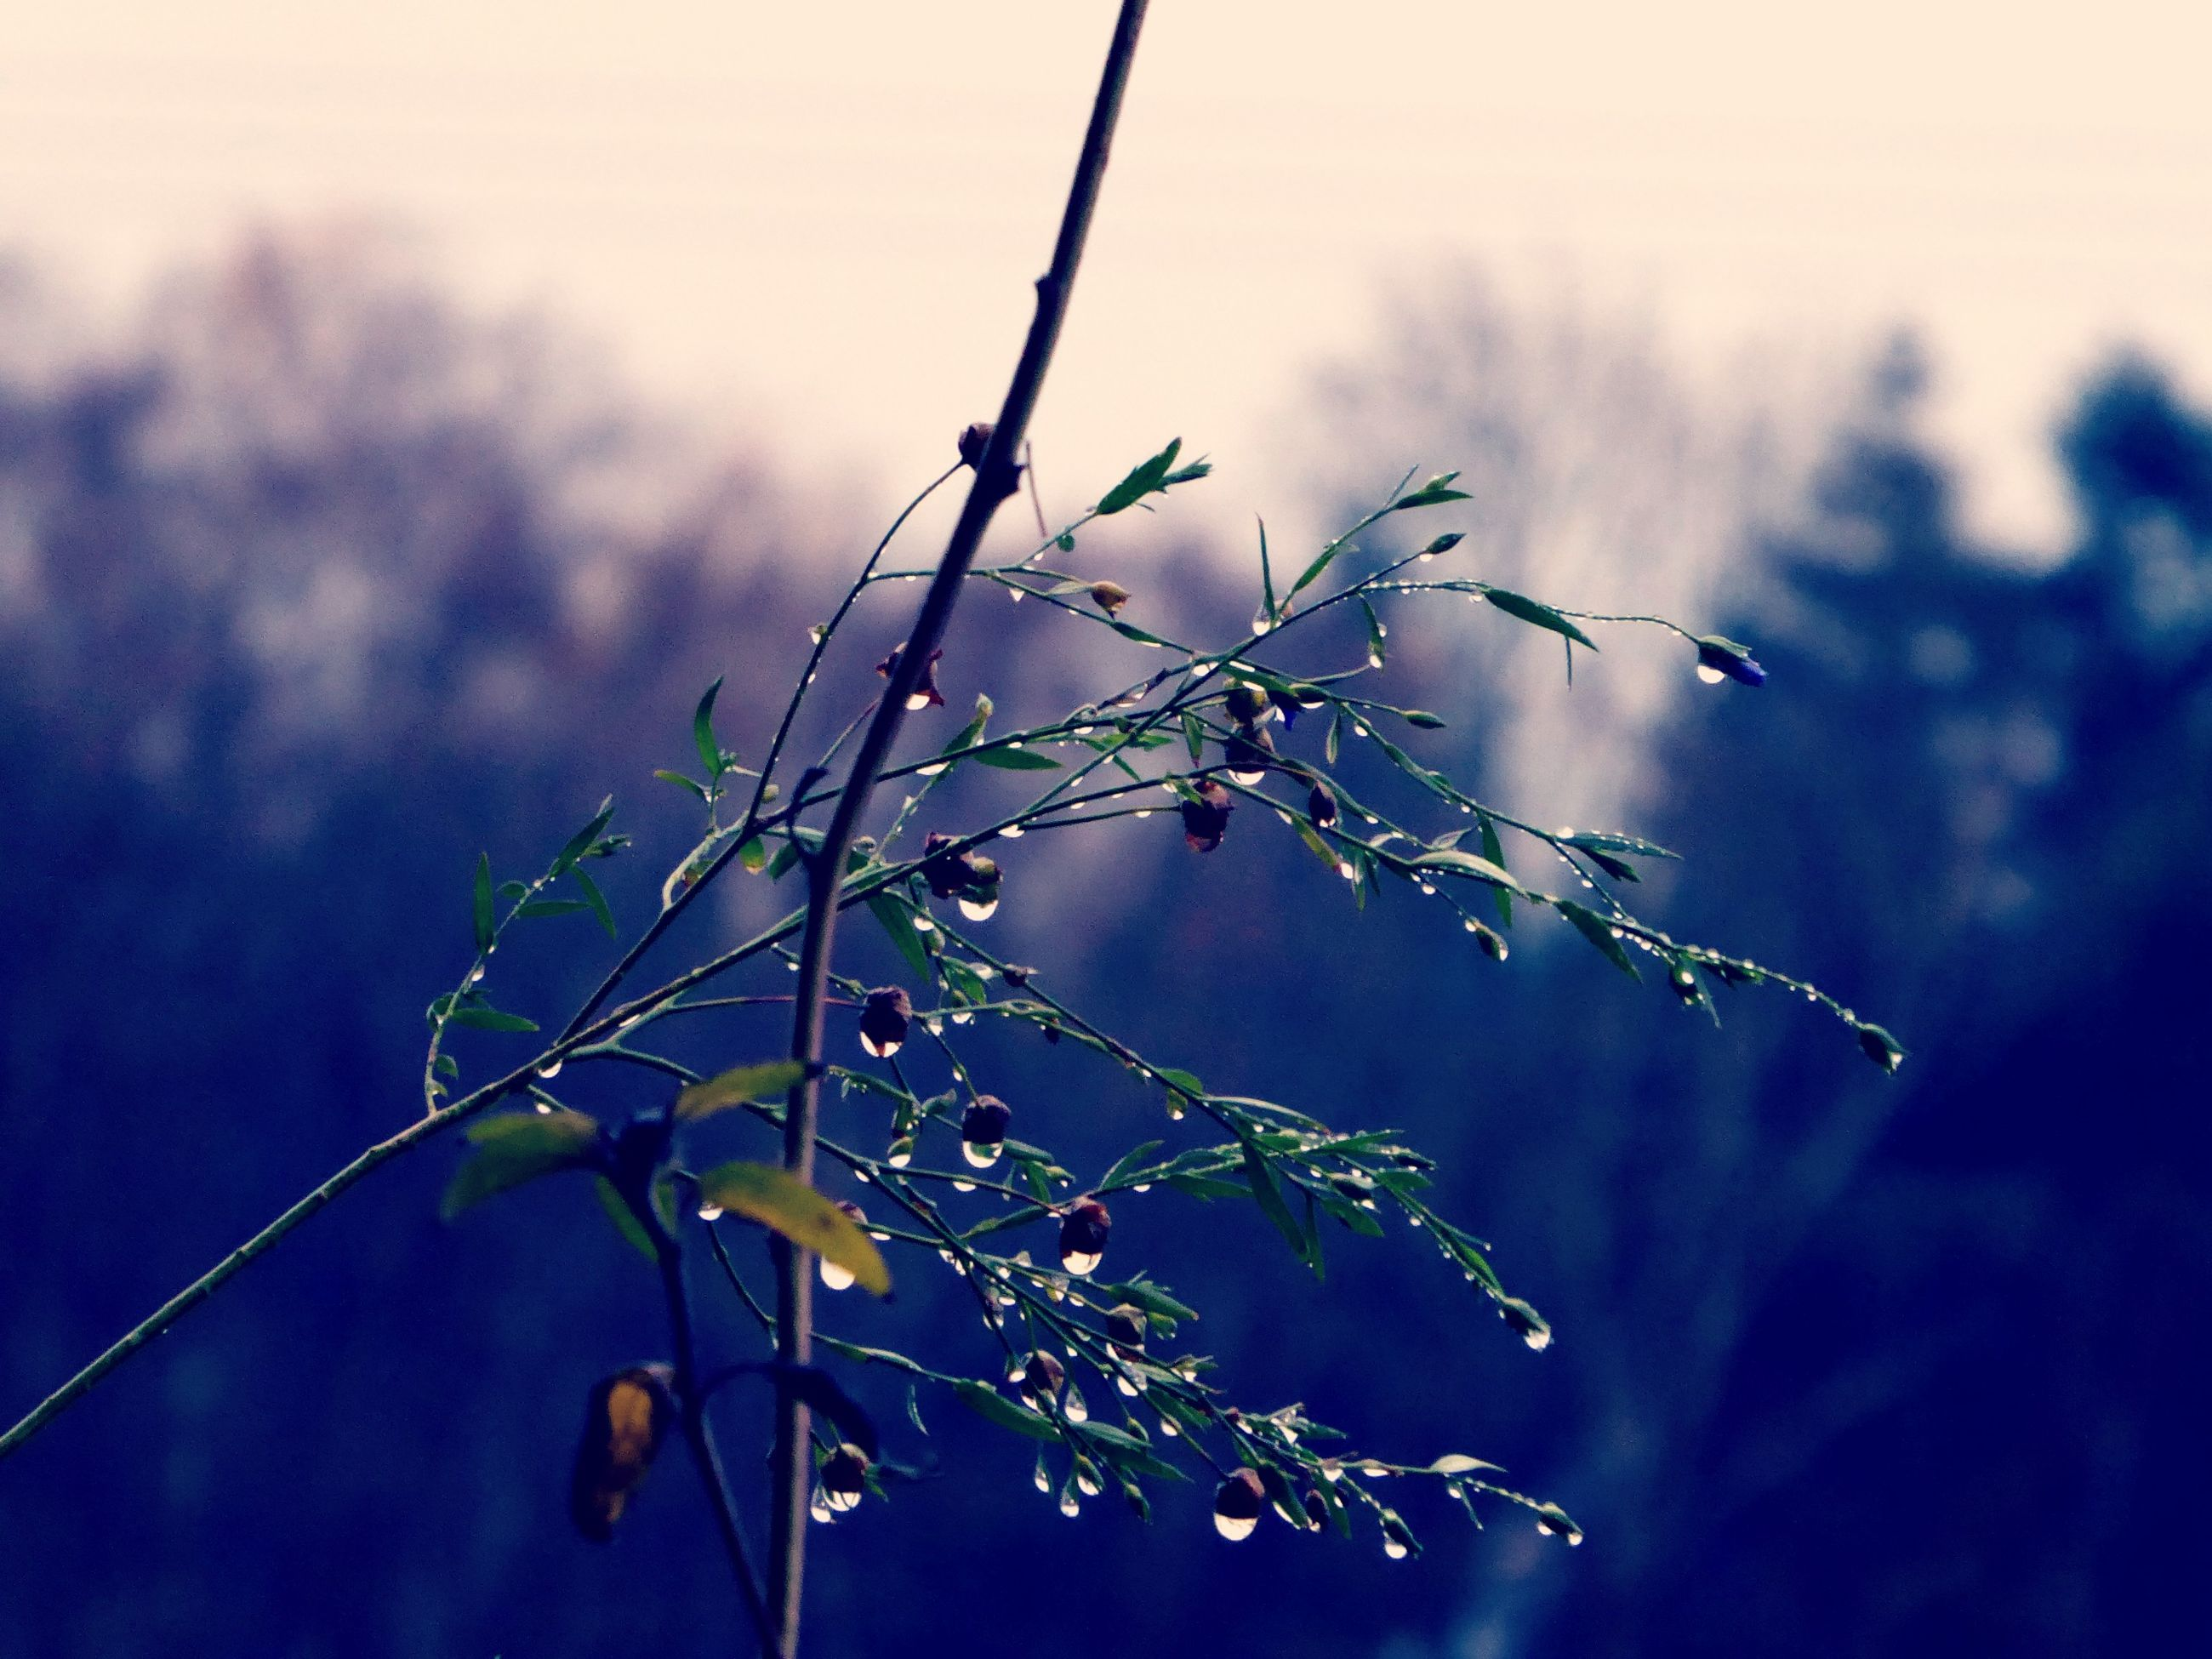 nature, focus on foreground, plant, growth, tree, no people, outdoors, beauty in nature, branch, day, close-up, fragility, sky